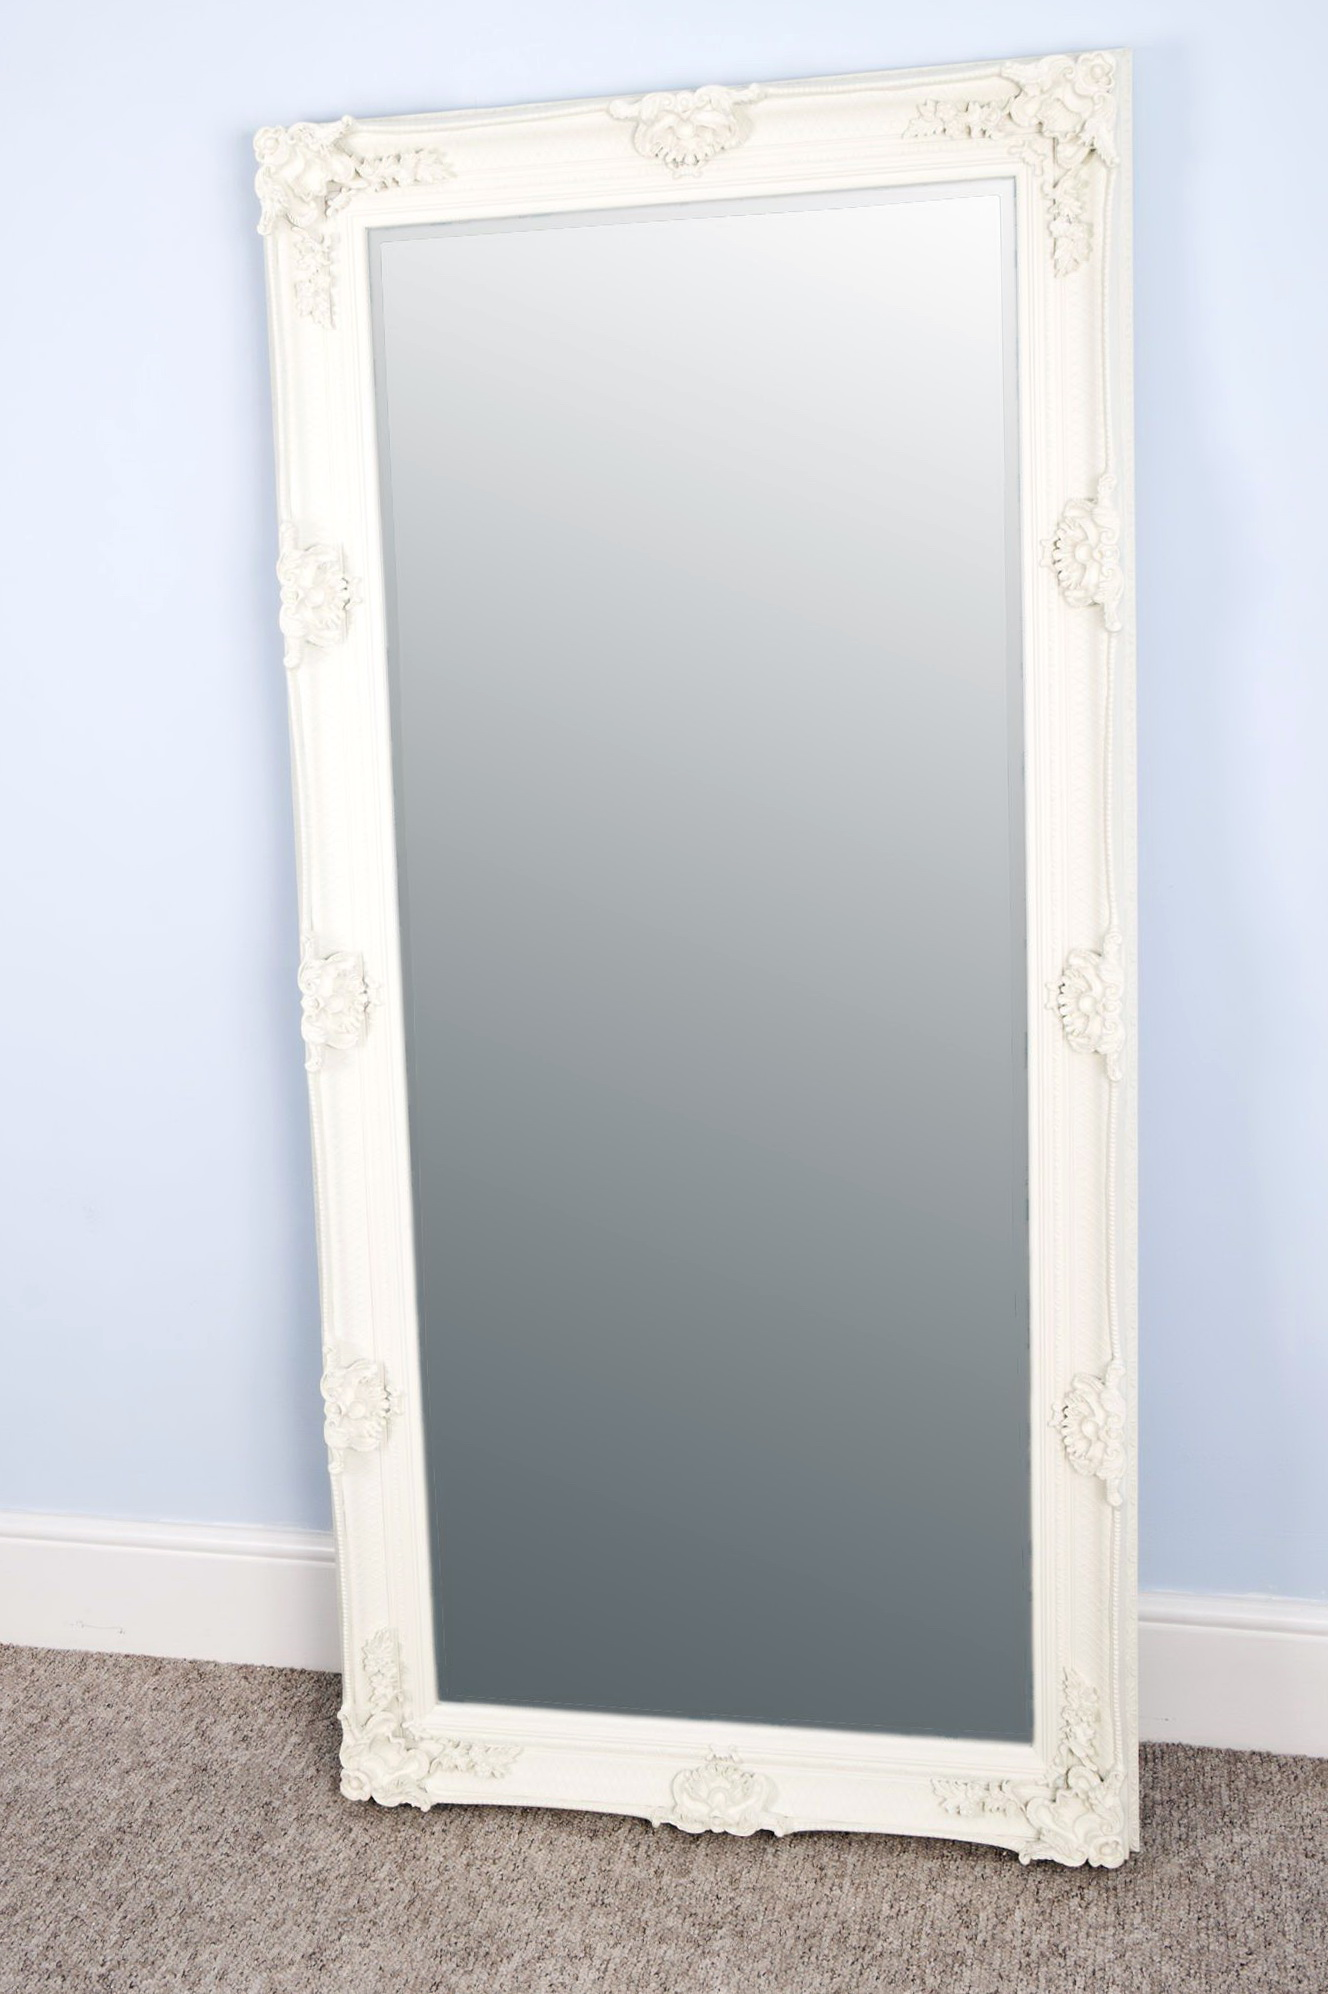 Large Free Standing Mirror Full Length